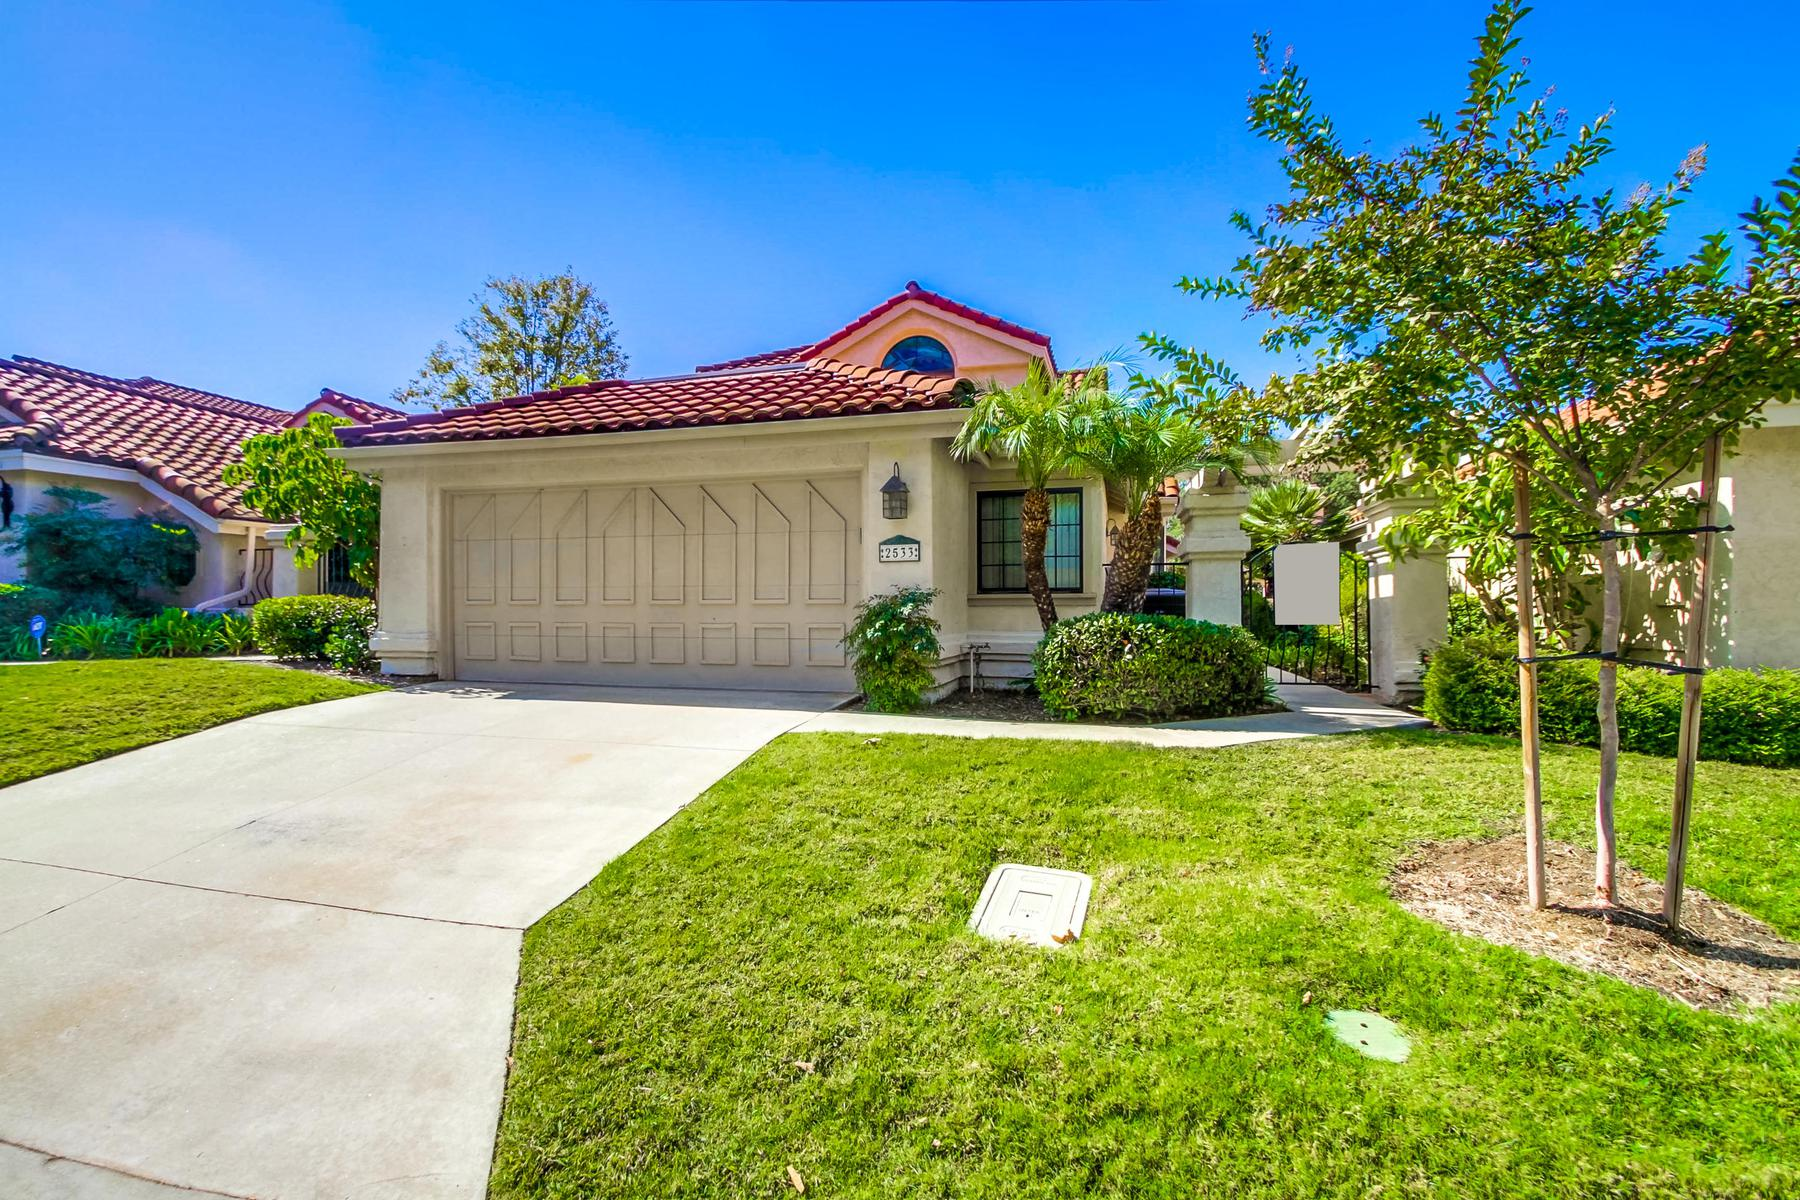 Single Family Homes for Sale at 2533 Holly Valley Drive Vista, California 92084 United States